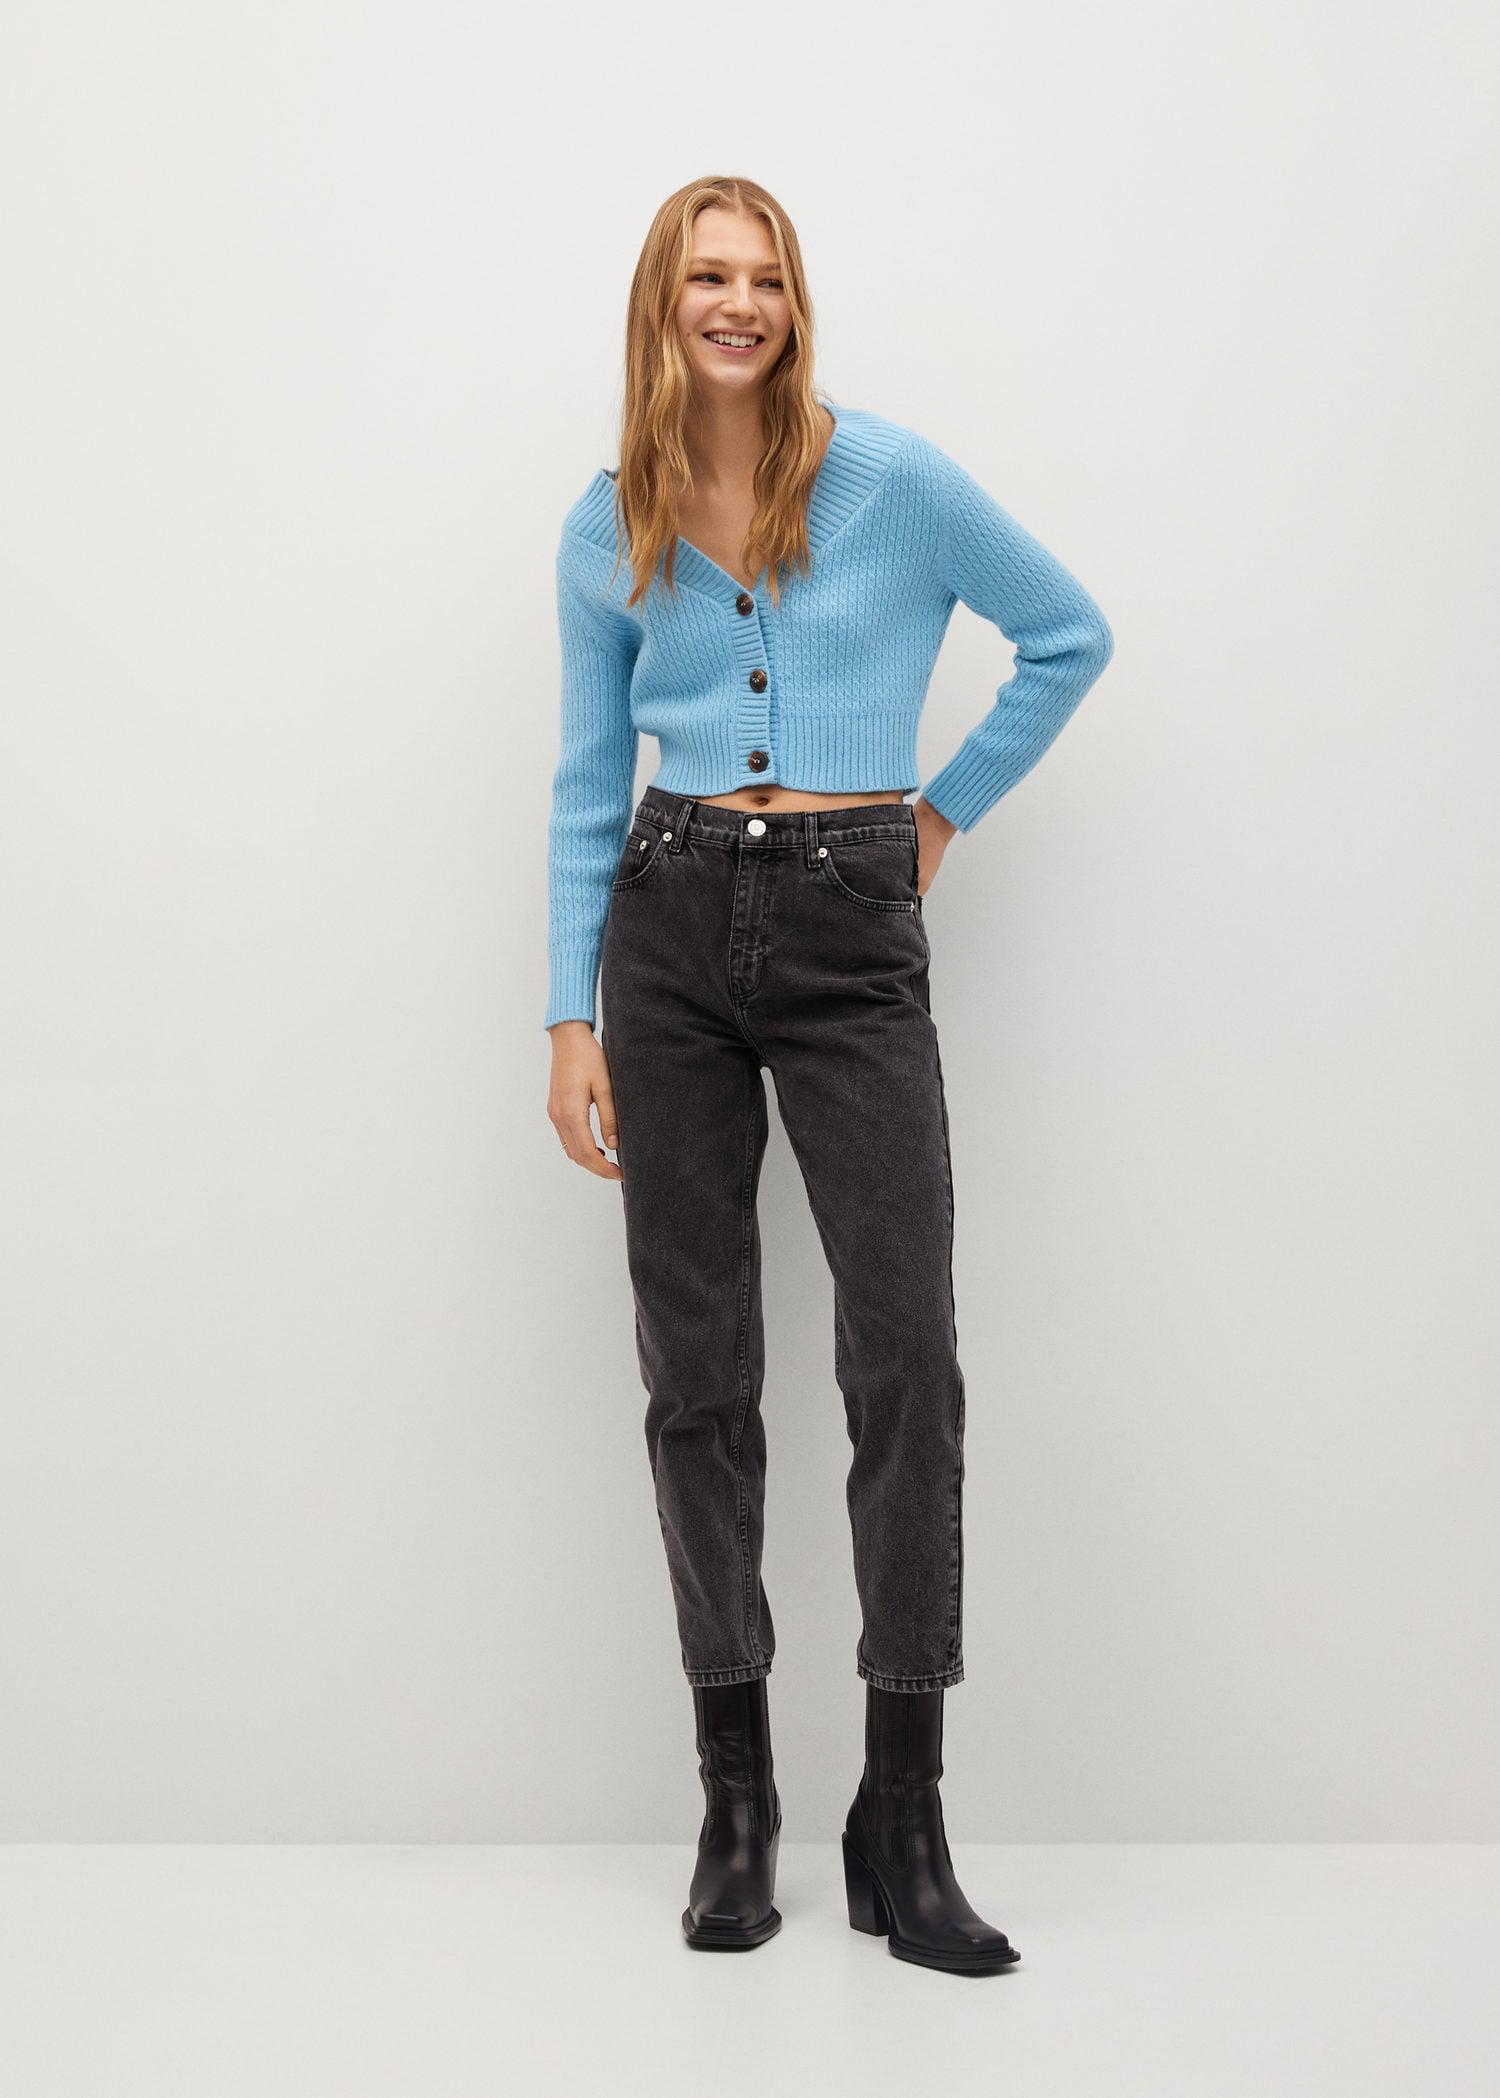 Cropped cardigan with buttons 1